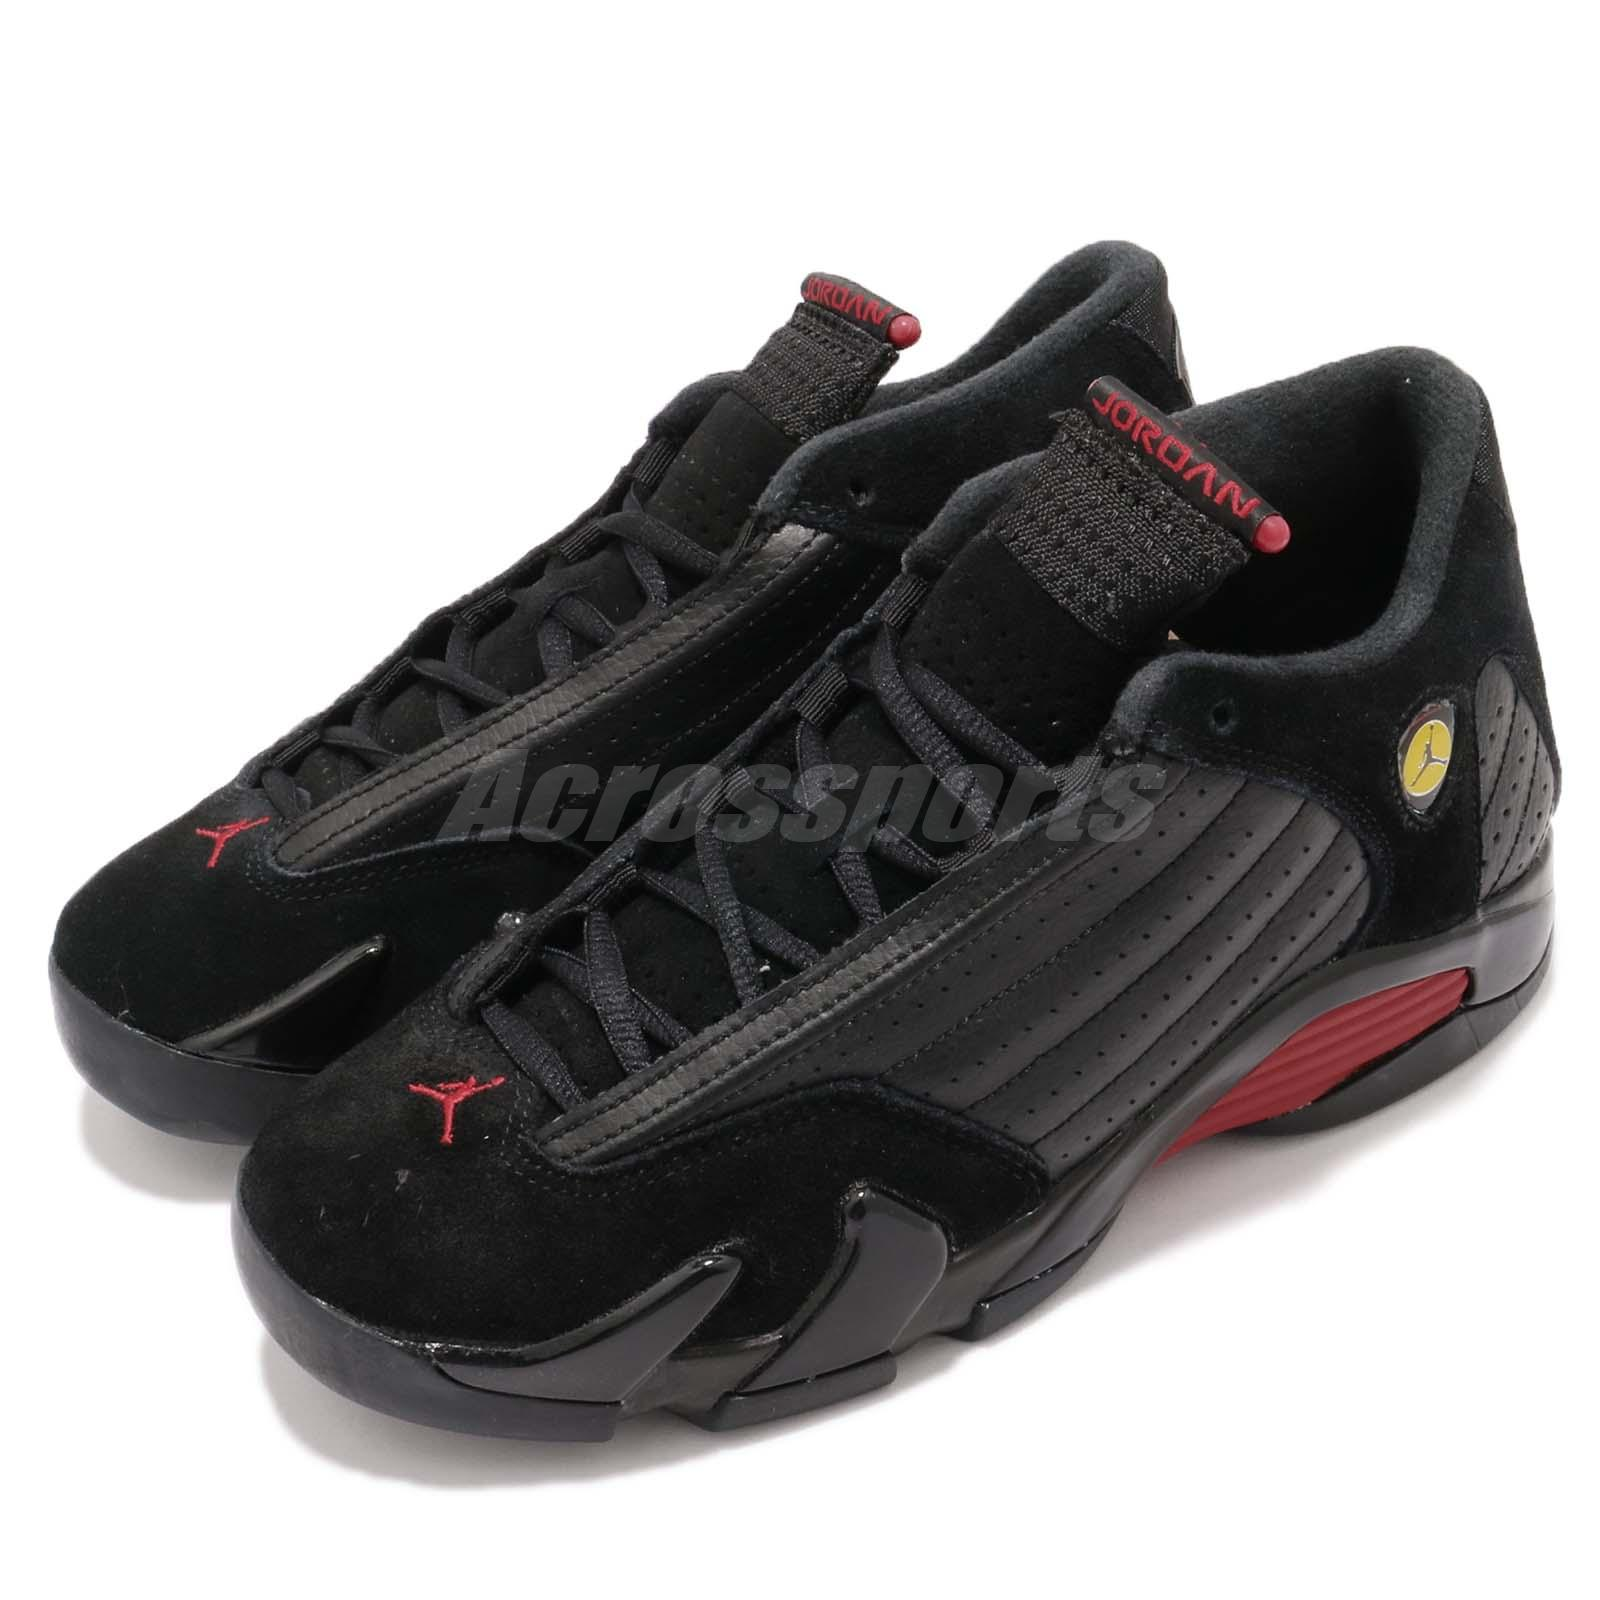 outlet store 528b9 18d58 Details about Nike Air Jordan 14 Retro BG XIV AJ14 Last Shot Black Red Kid  Youth 487524-003